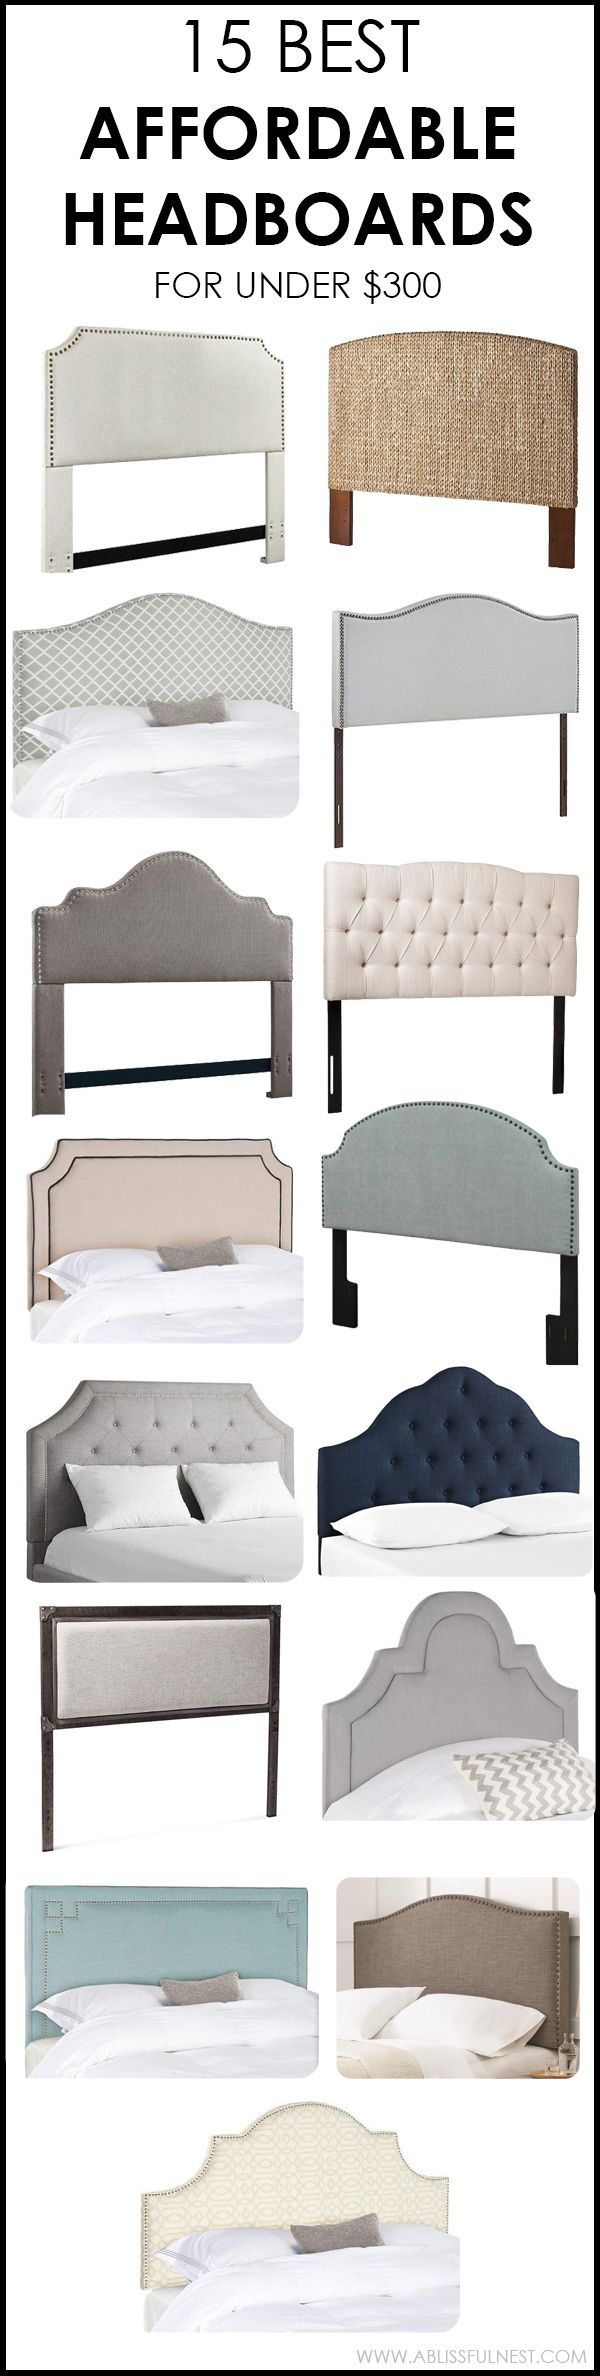 Best Headboards affordable headboards under $300 with lots of style | nest